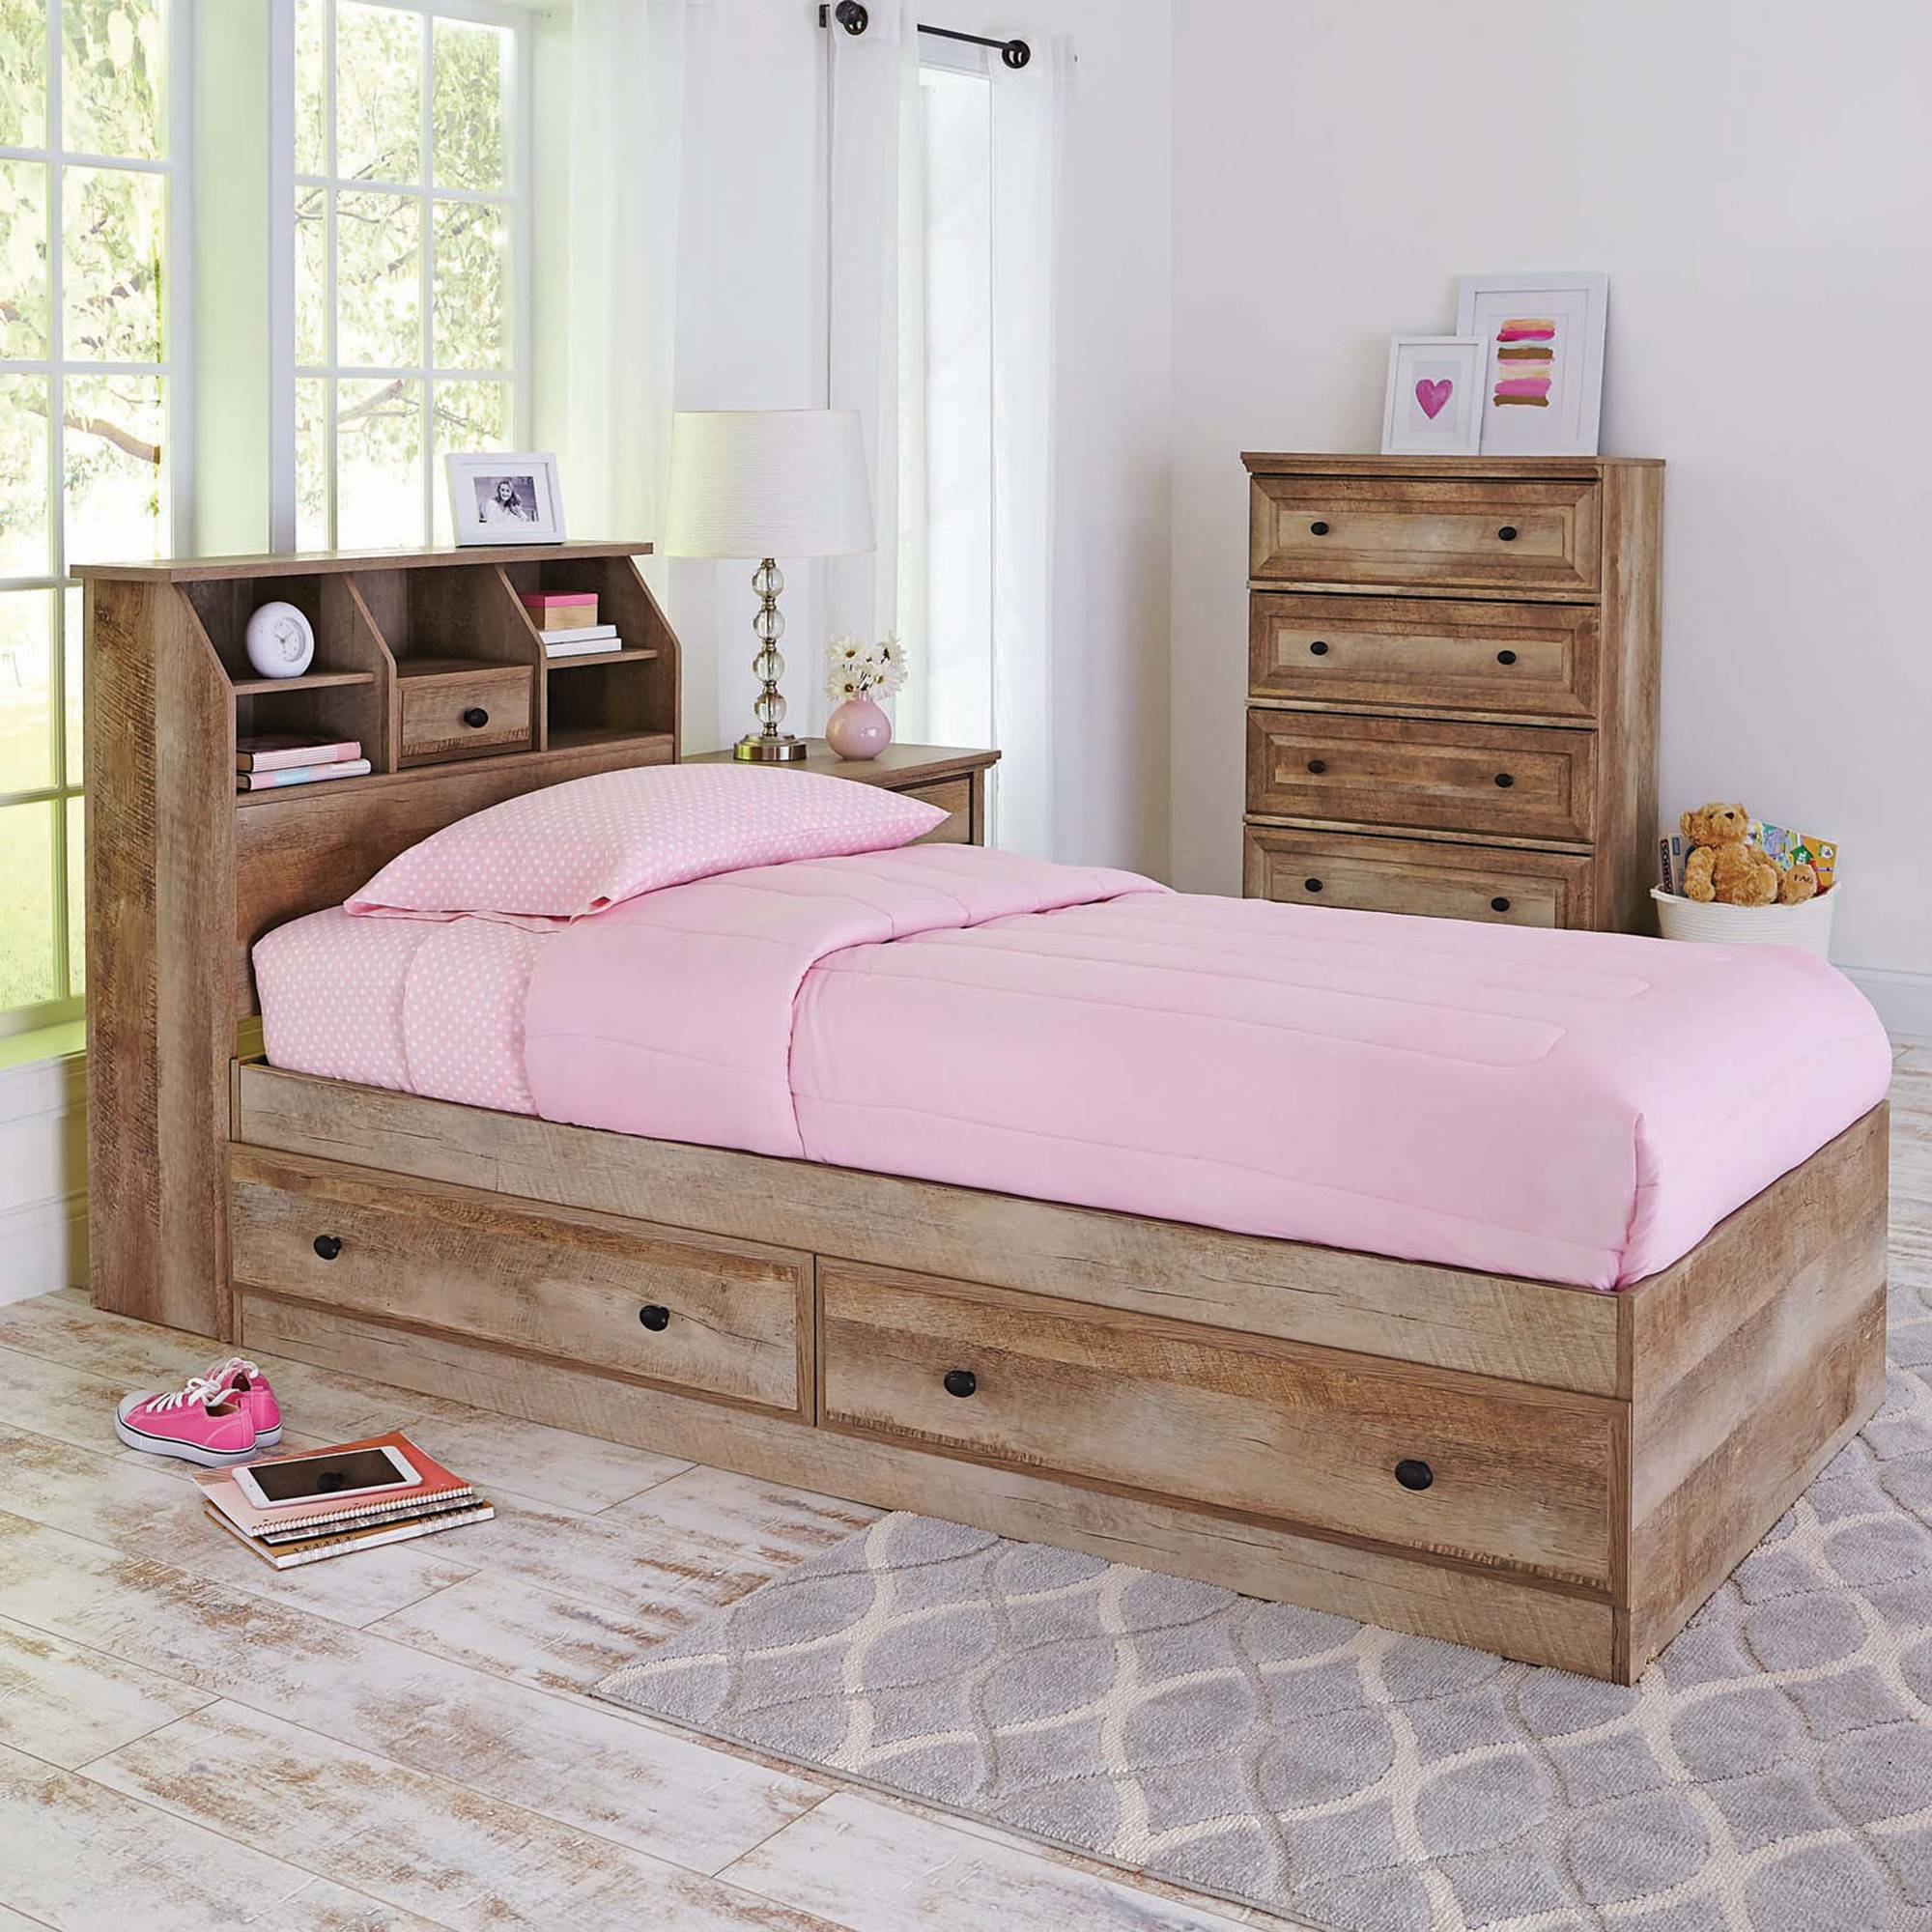 Better Homes And Gardens Crossmill Mates Twin Bed With Storage, Weathered  Finish   Walmart.com Design Ideas